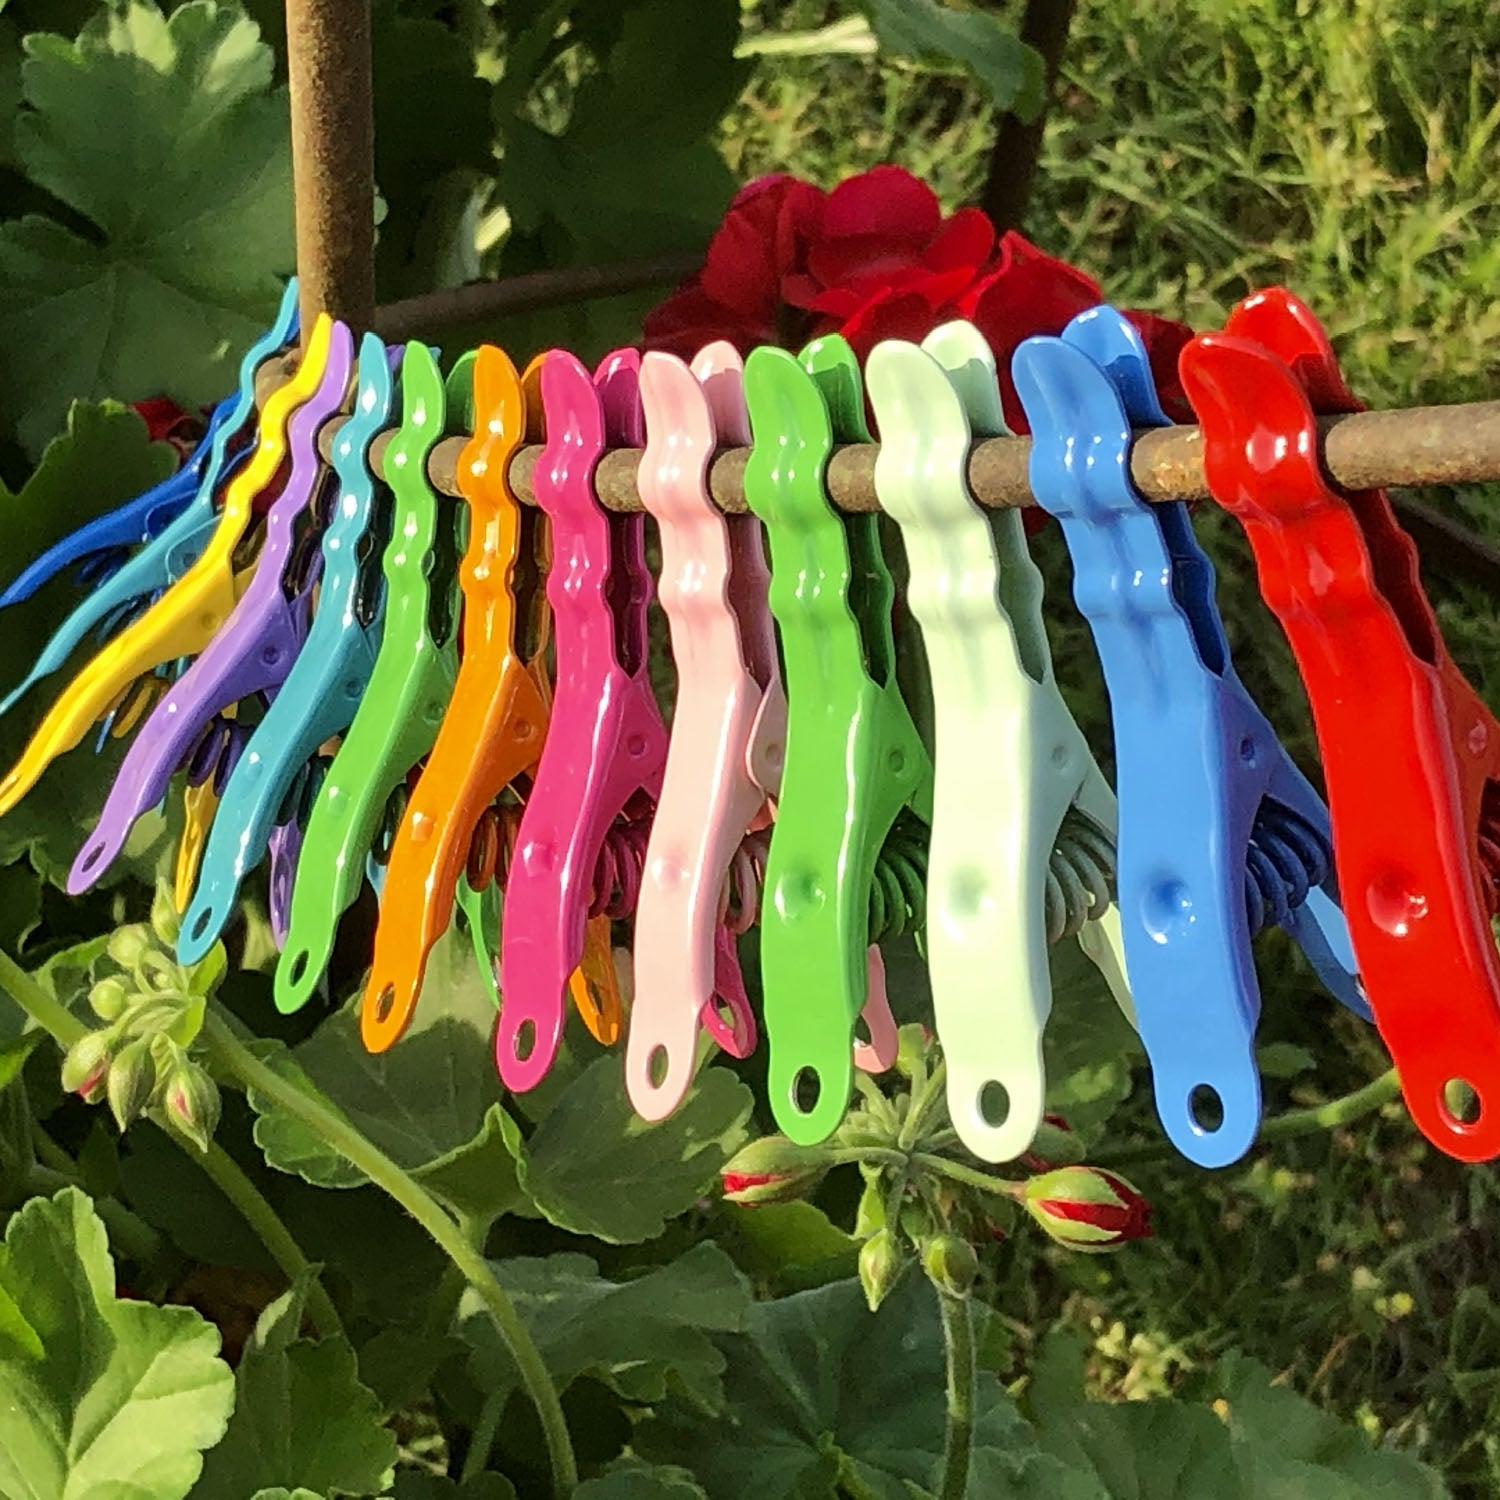 Extreme Colour Clothespins - Chili Pepper Red